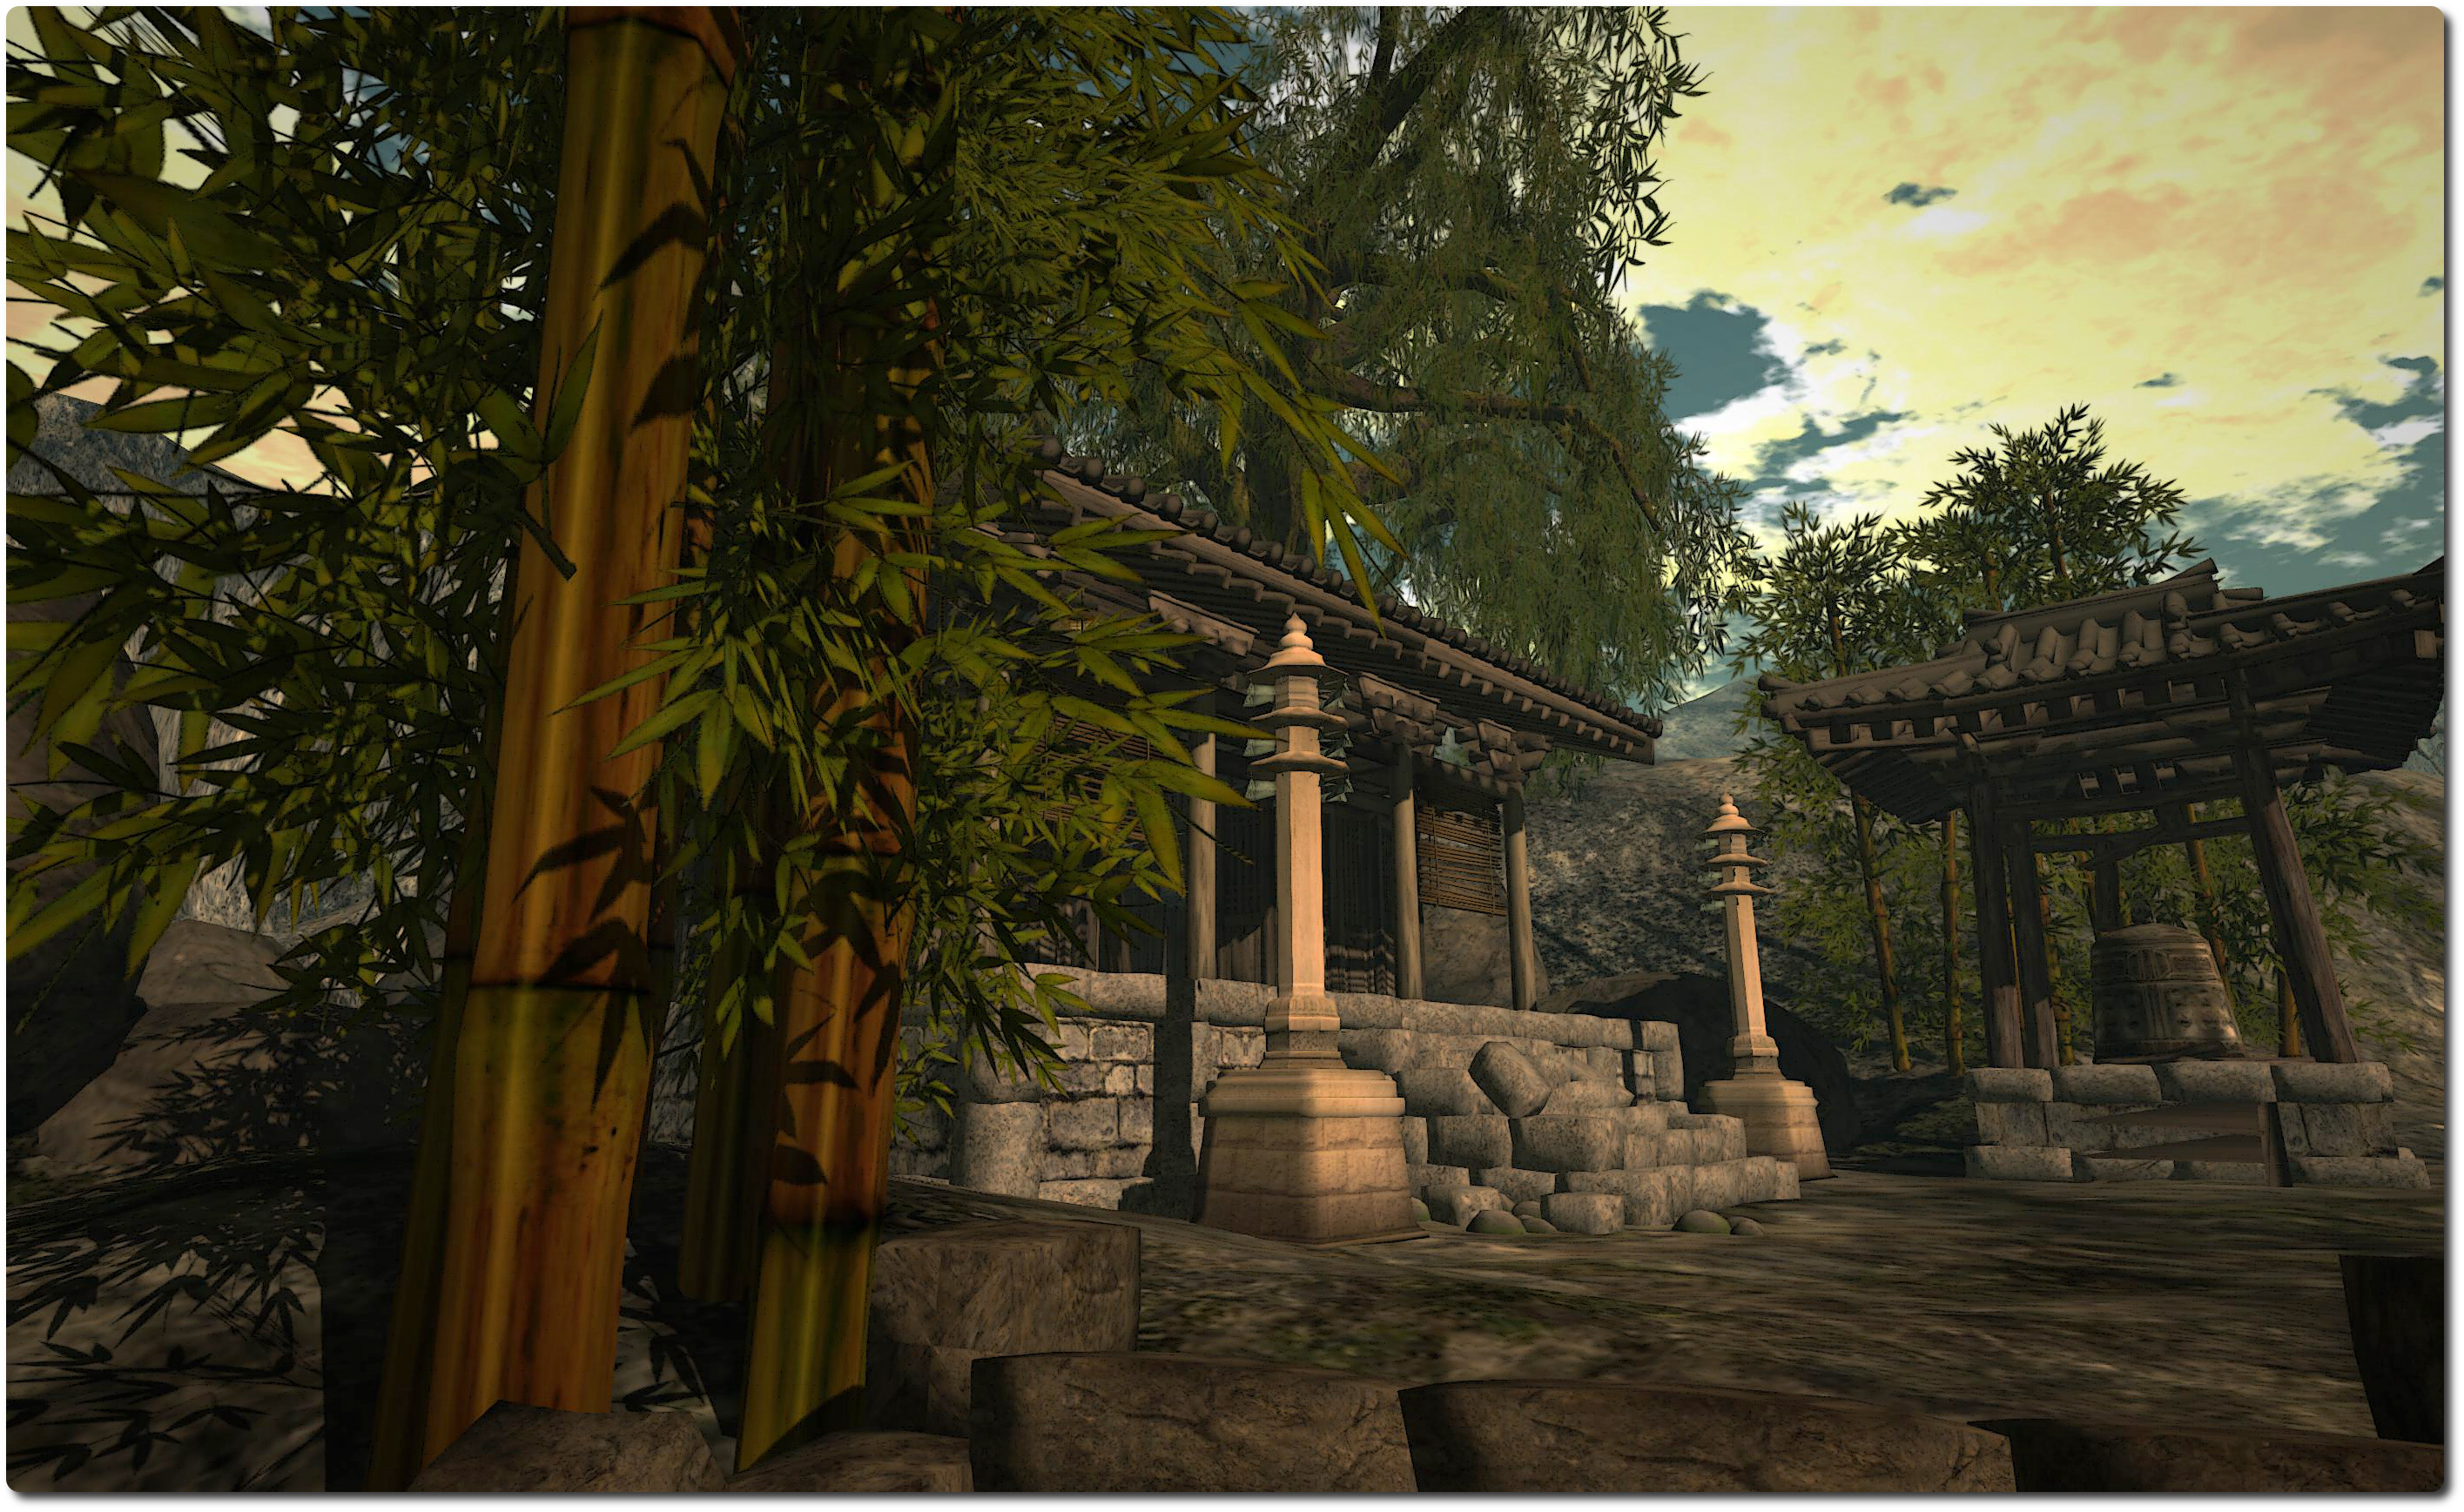 Yamatai, Okami; by Inara Pey, Febtuary 2014, on Flickr